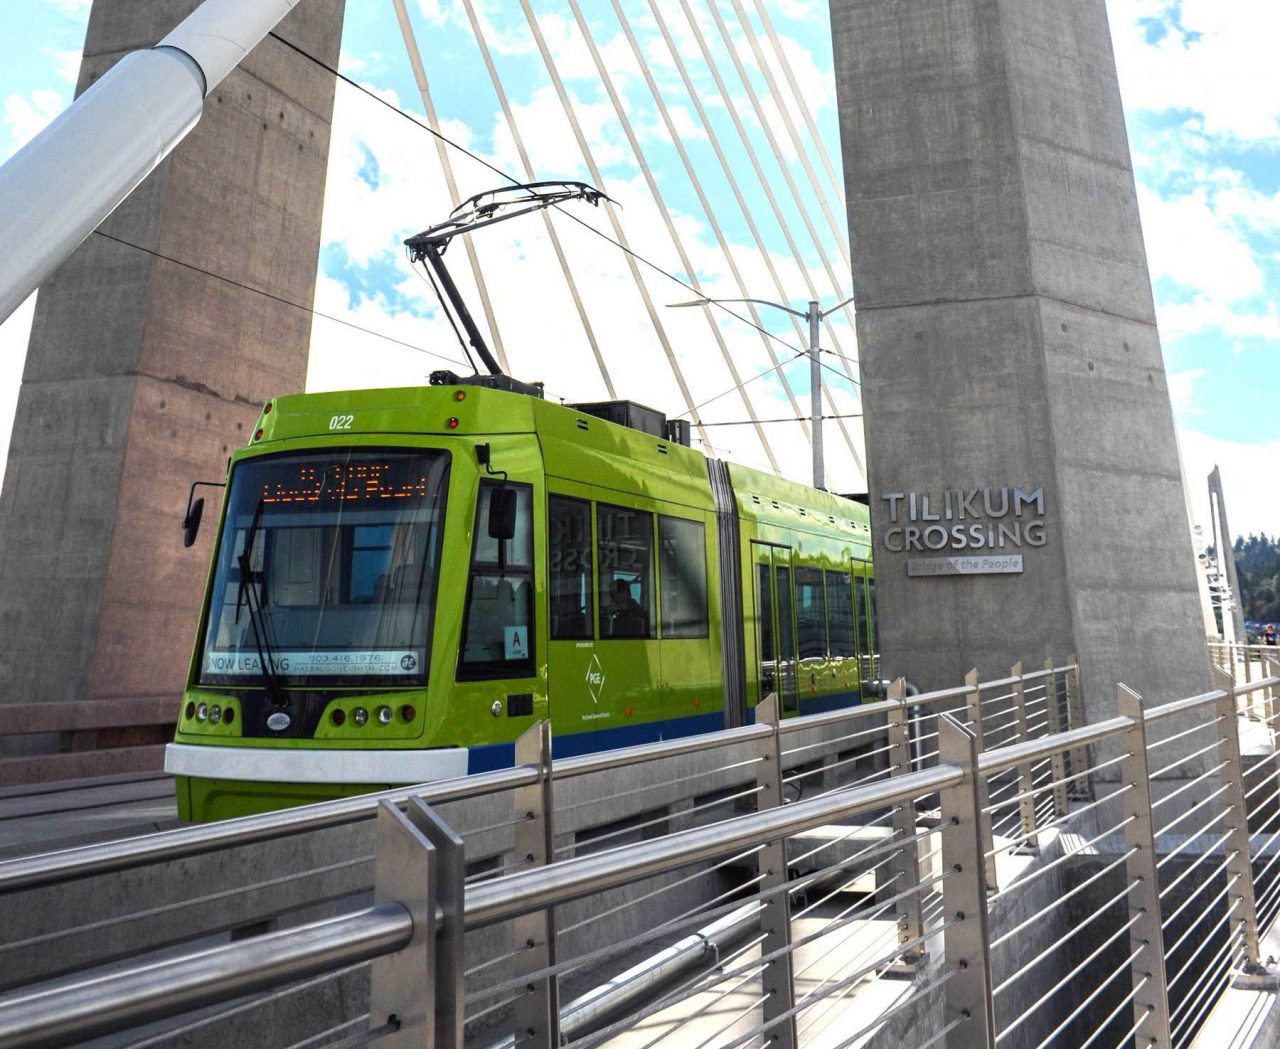 Streetcar on the Tilikum Crossing